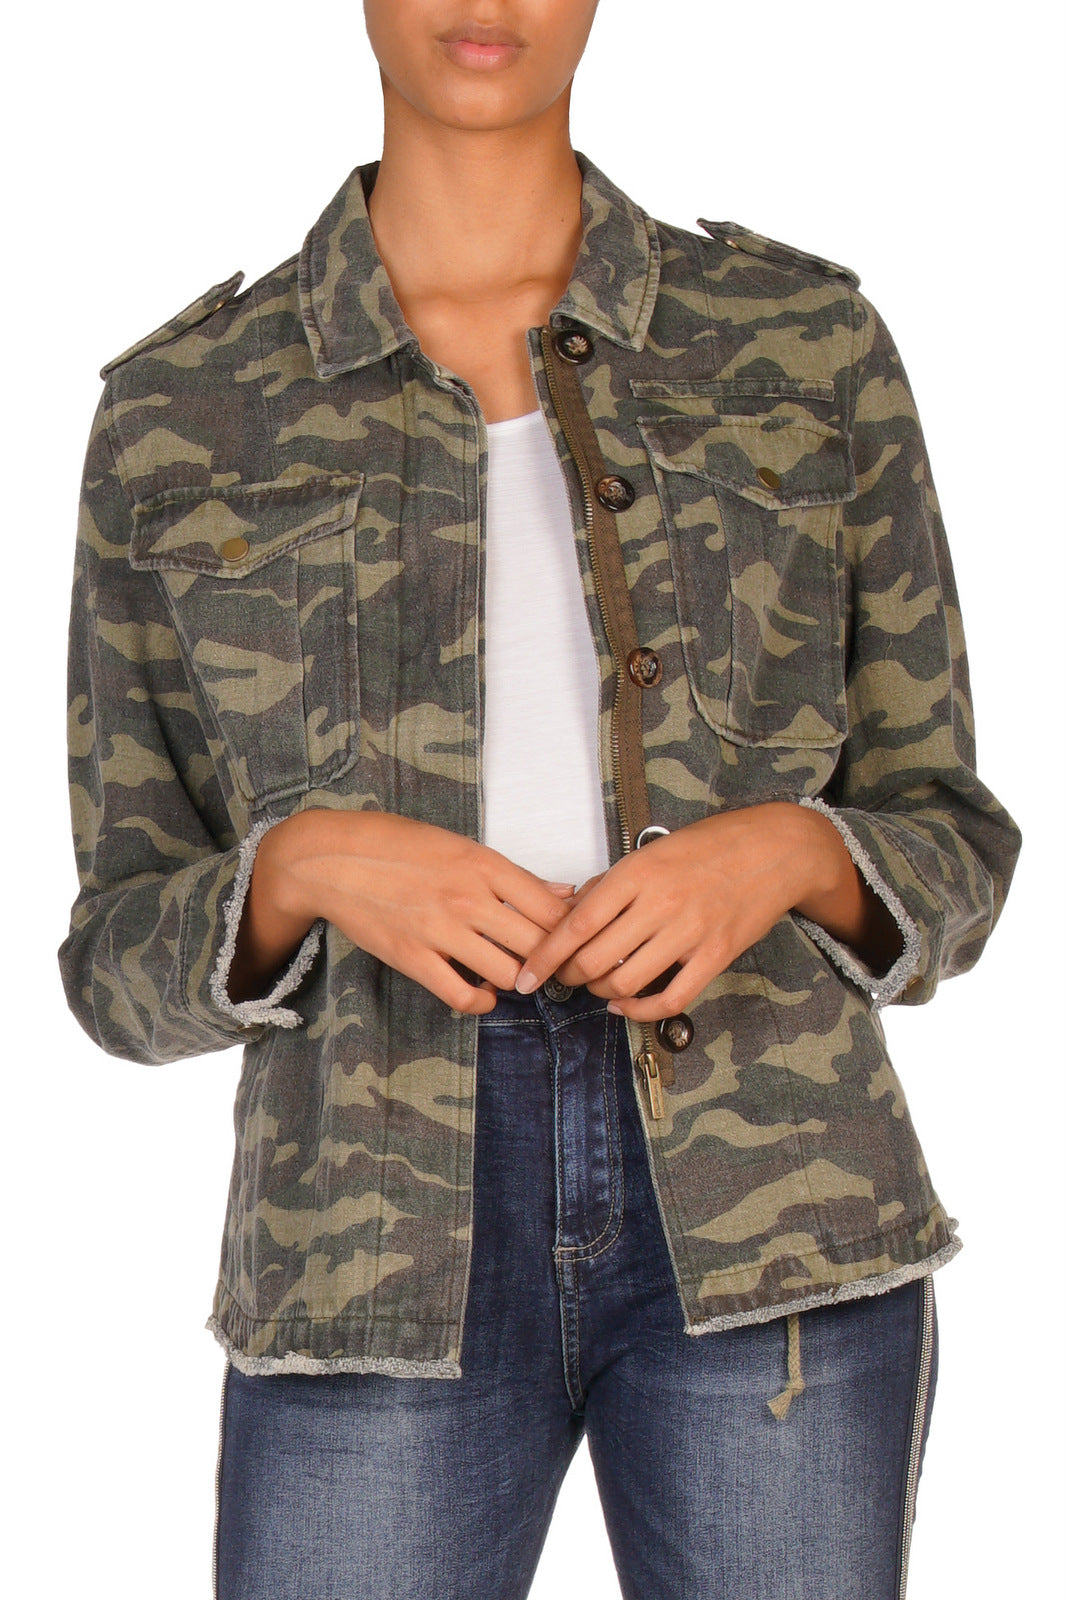 Olive Green Camouflage Distressed Jacket